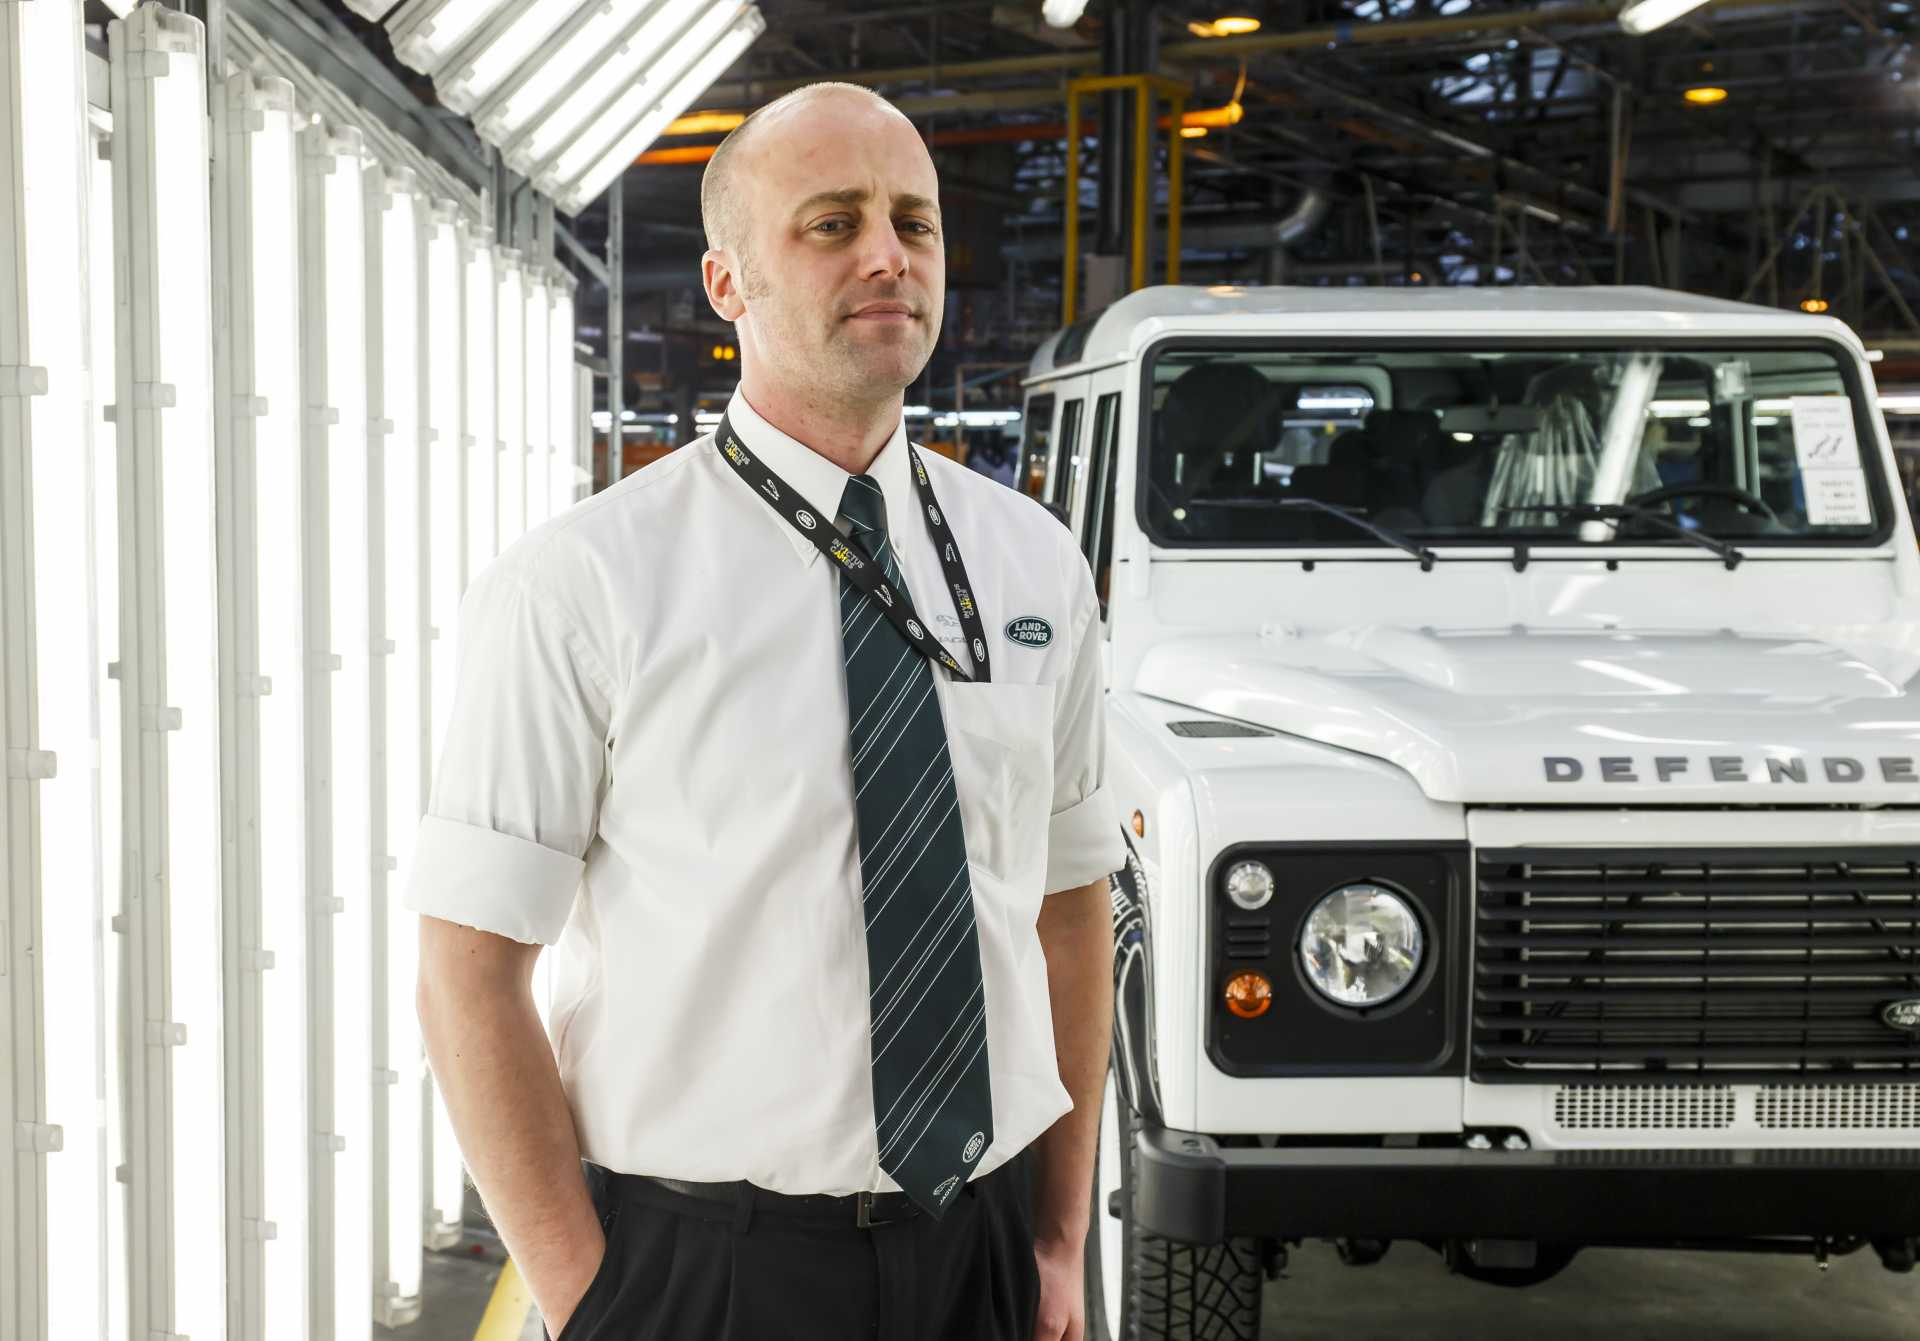 Former Staff Sergeant Wayne Walker (Queen's Royal Lancers) is a process leader at Jaguar Land Rover in Solihull.